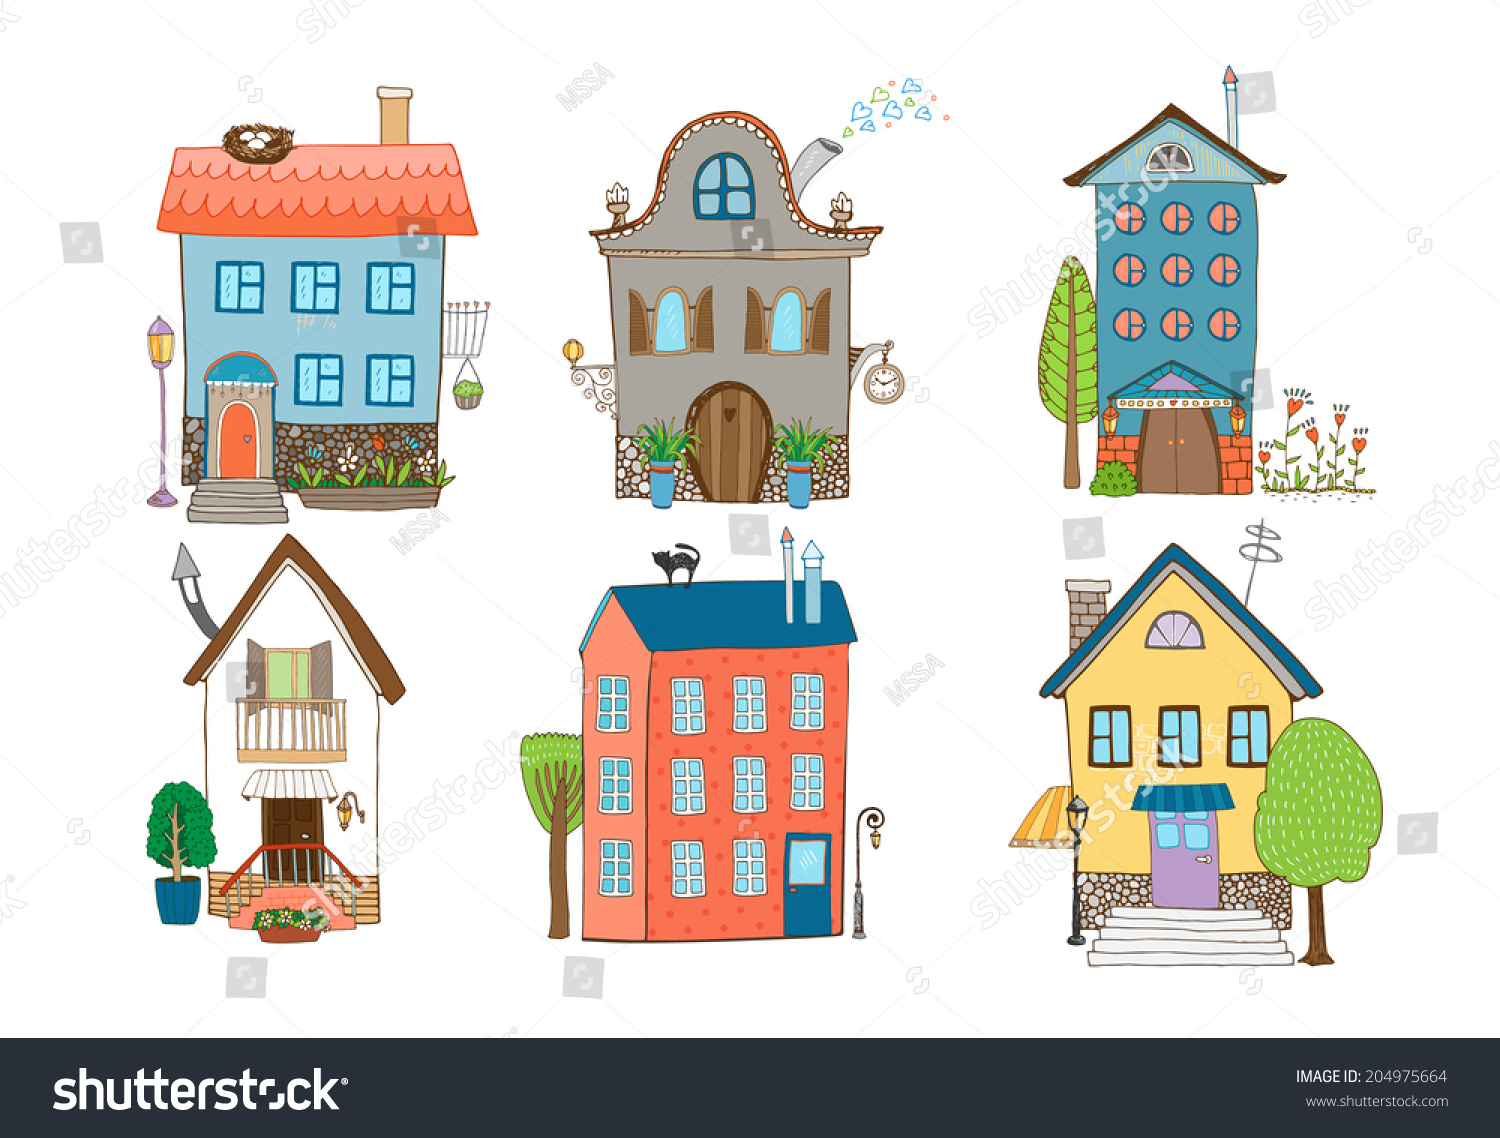 Home Sweet Home - Set Of Hand-Drawn Vector Houses In Different ... - ^